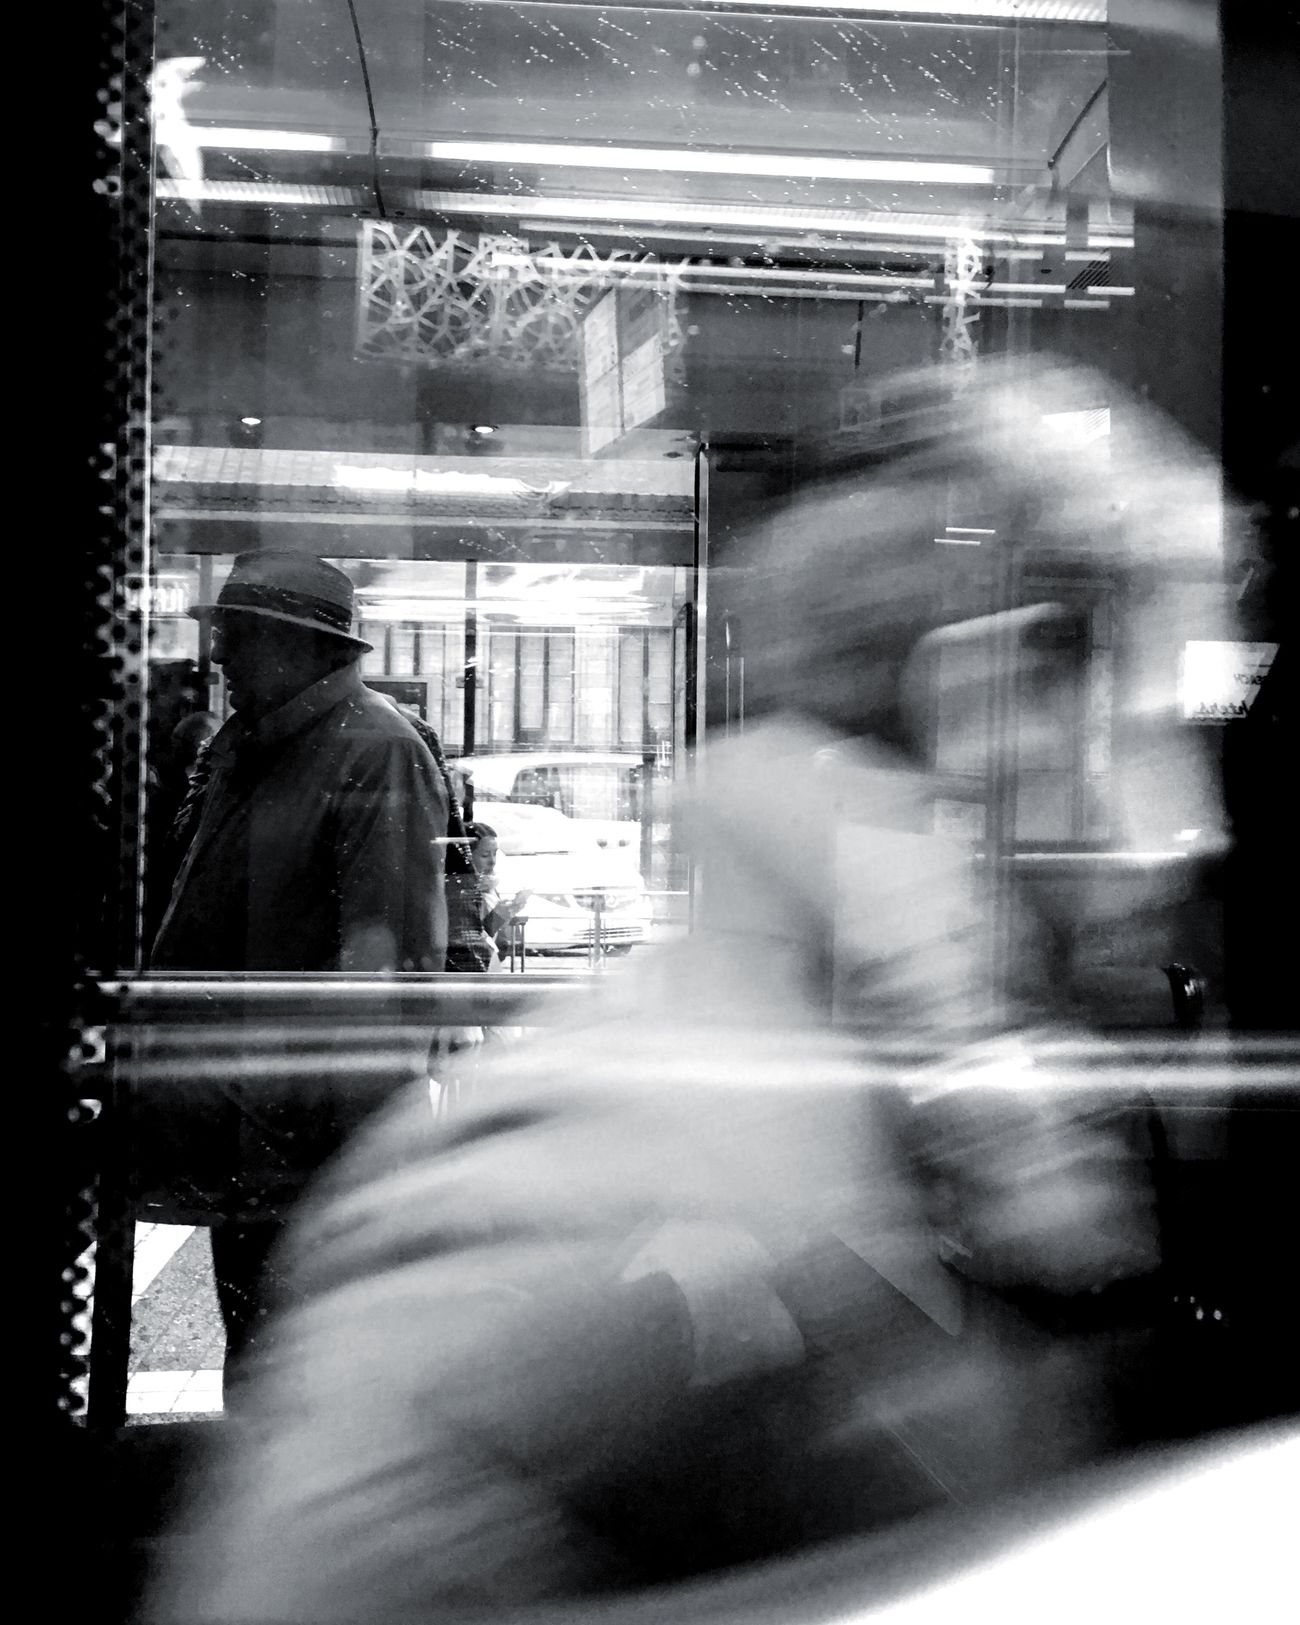 Our life with the ghosts from the past and the future The Street Photographer - 2017 EyeEm Awards Streetphotography Reflection Blurred Motion Looking Through Window Mobilephotography